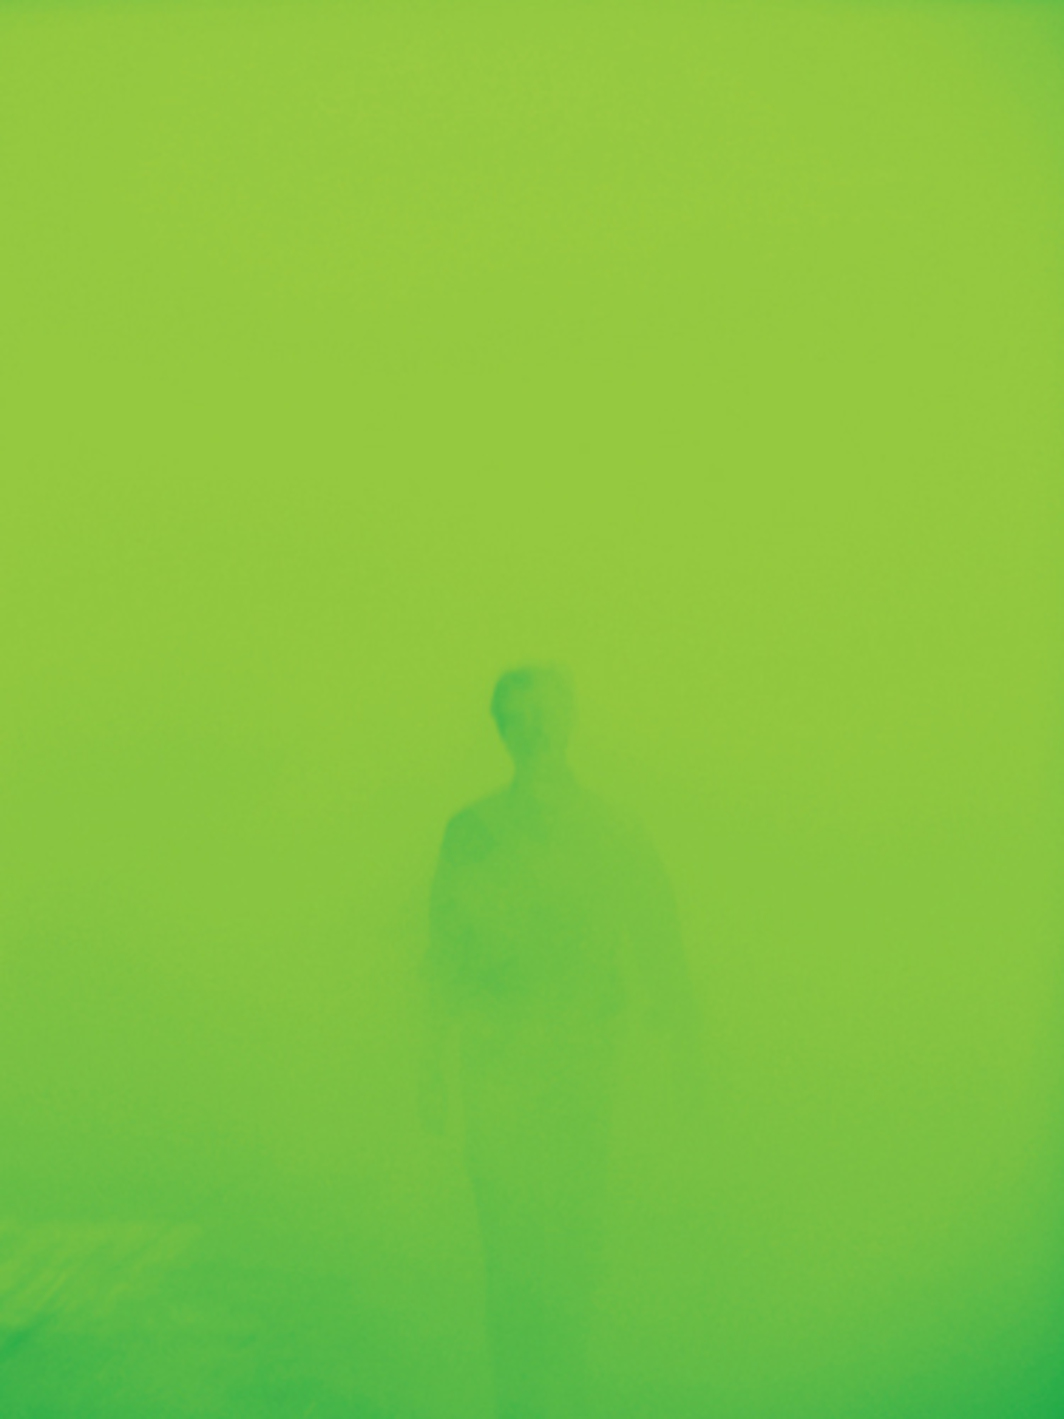 Ann Veronica Janssens, Lee 121, 2005, artificial mist and light. Installation view, Sucière. From the 8th Biennale de Lyon. Photo: Blaise Adilon.